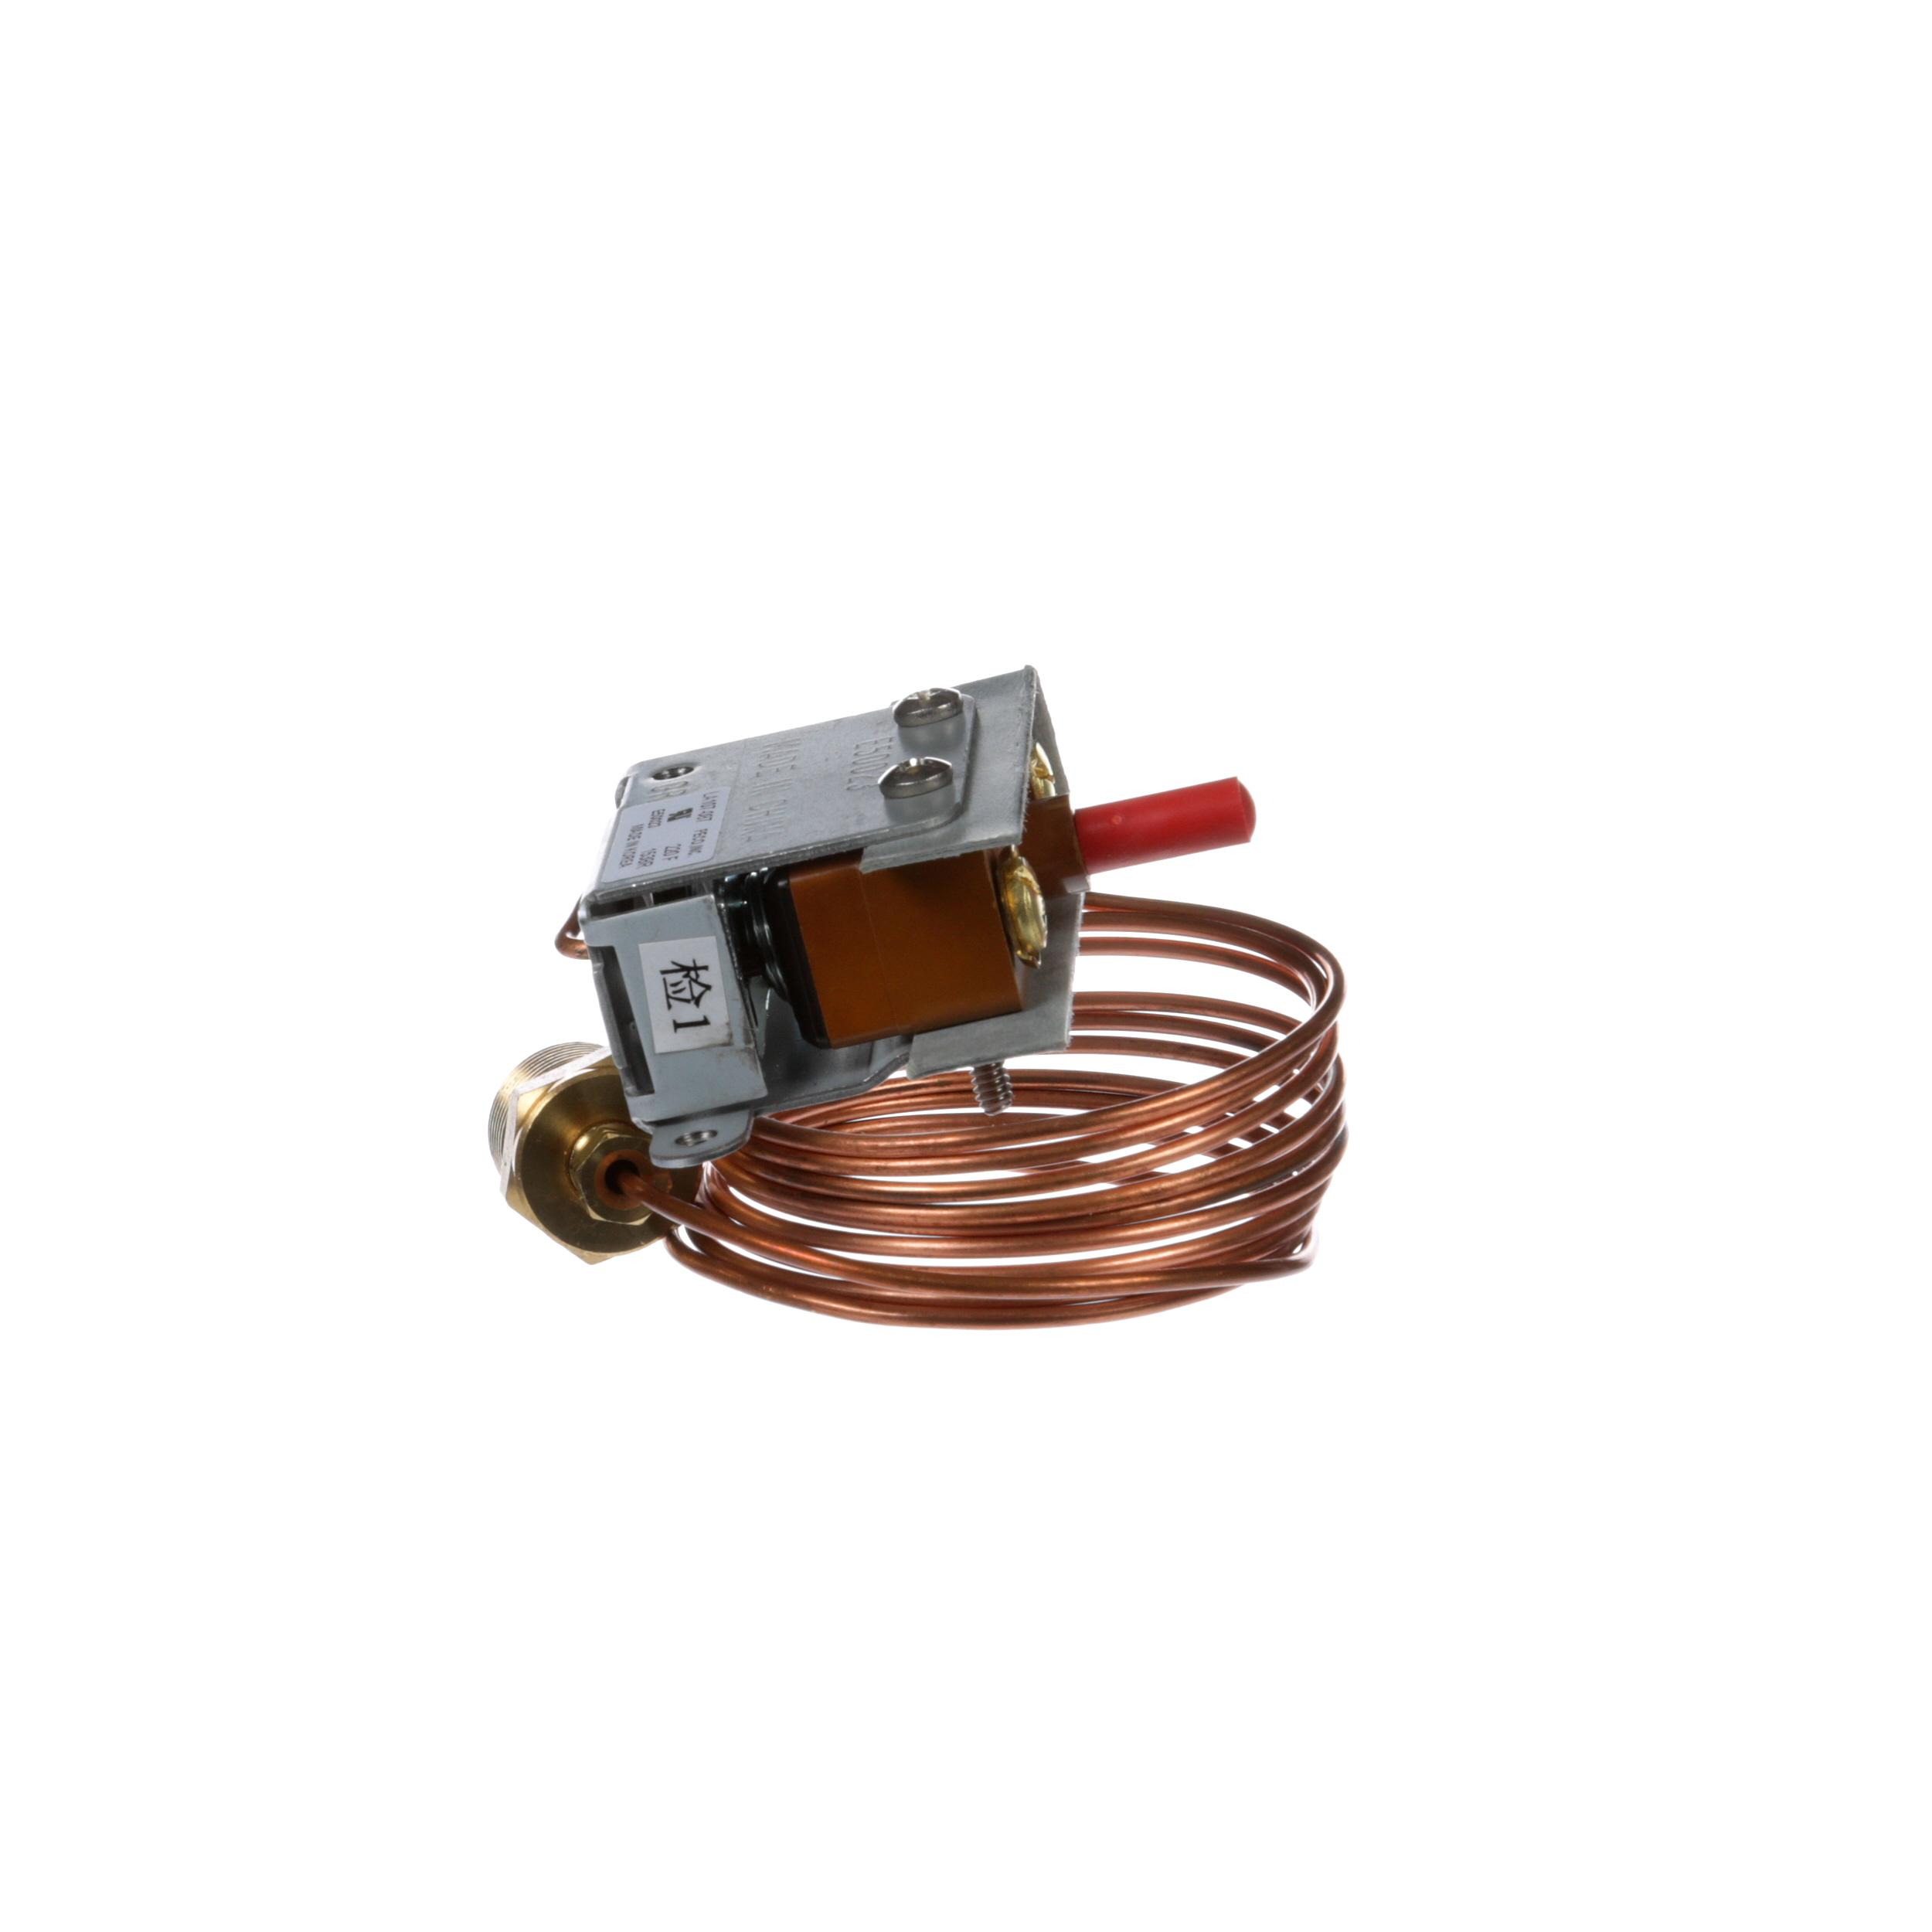 STERO HI-LIMIT THERMOSWITCH